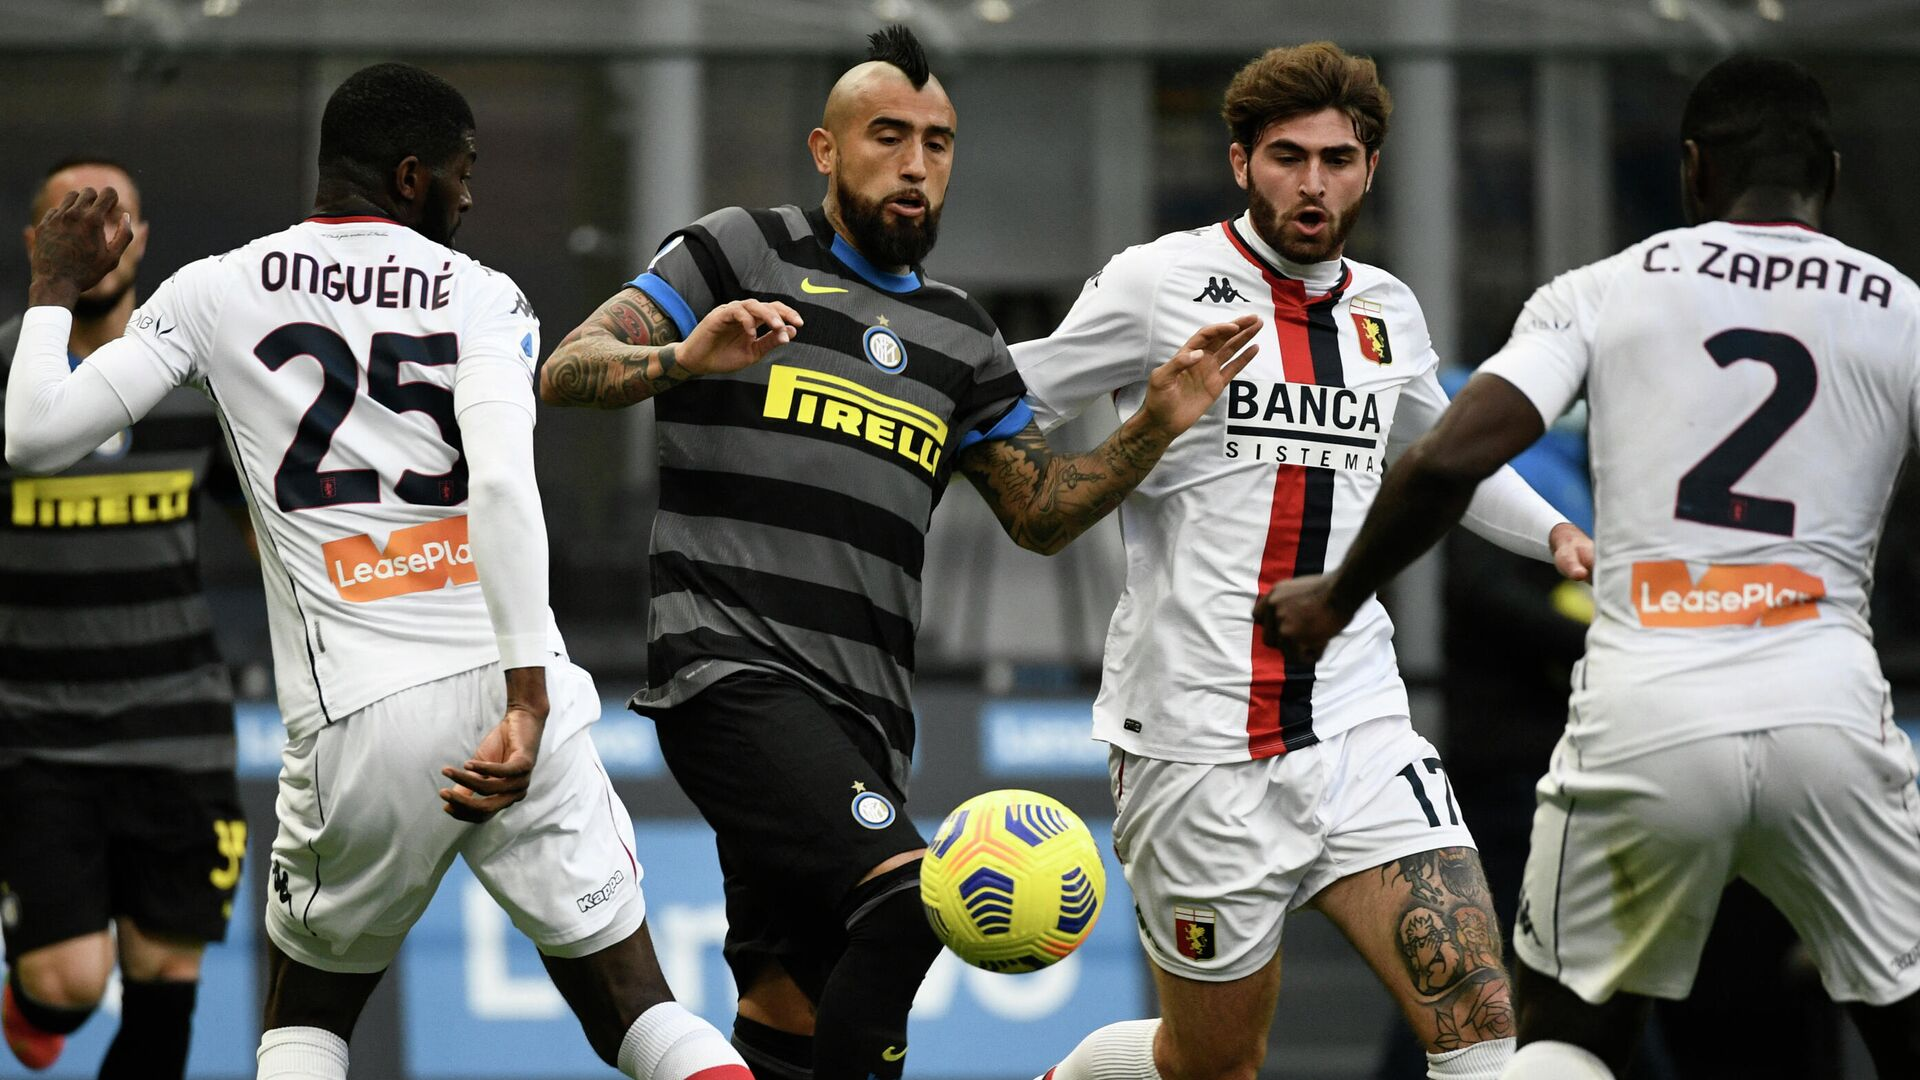 Inter Milan's Chilean midfielder Arturo Vidal (C) challenges Genoa's Cameroonian defender Jerome Onguene (L), Genoa's Italian midfielder Manolo Portanova (2ndR) and Genoa's Colombian defender Cristian Zapata during the Italian Serie A football match Inter Milan v Genoa on February 28, 2021 at the San Siro stadium in Milan. (Photo by Filippo MONTEFORTE / AFP) - РИА Новости, 1920, 28.02.2021